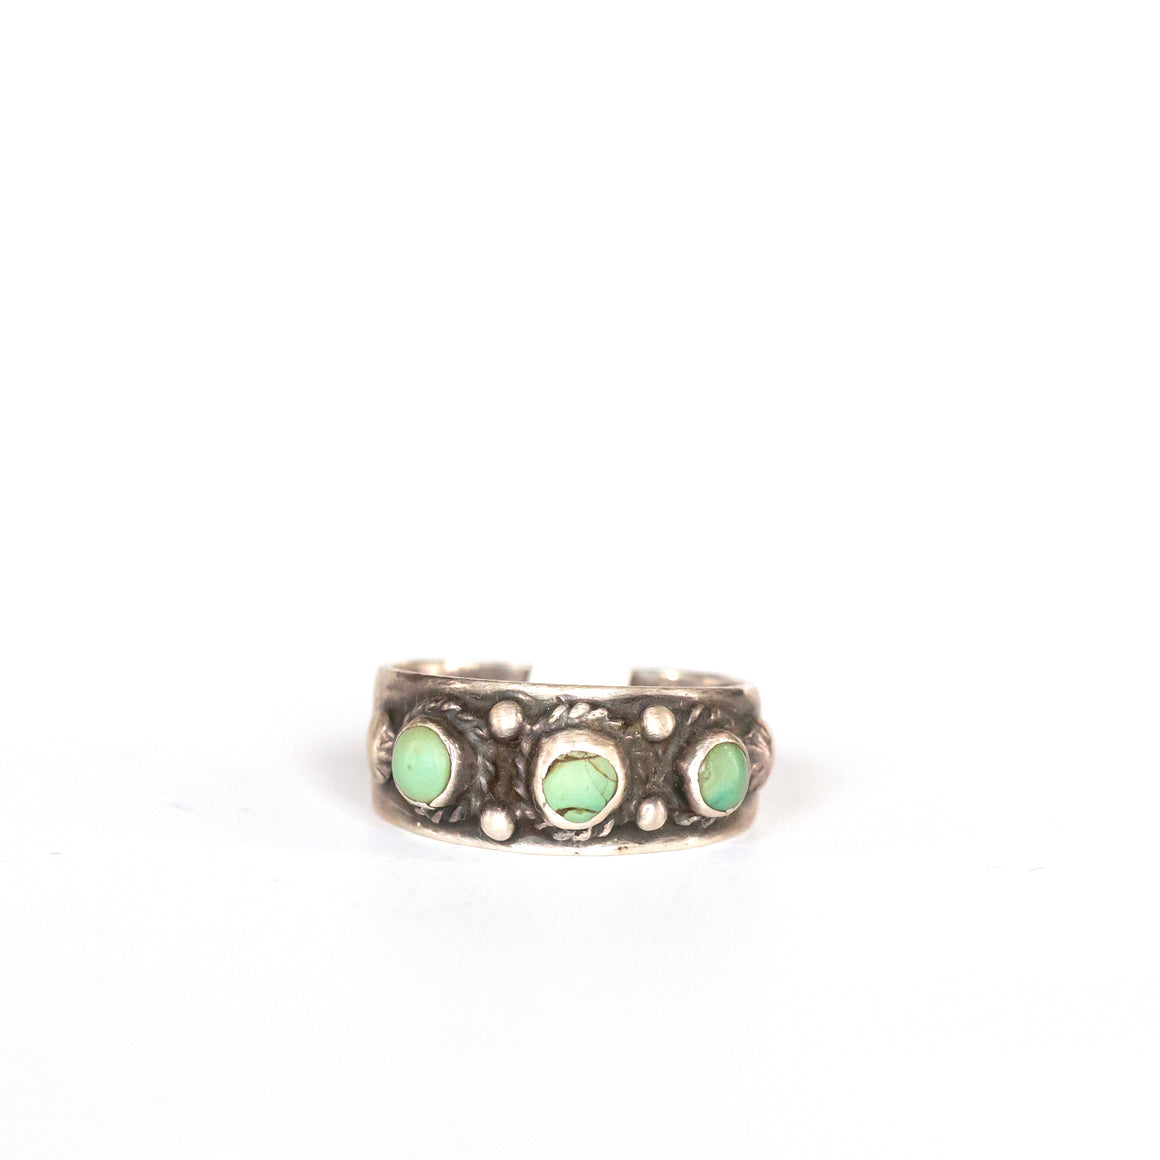 VINTAGE JEWELRY | TURQUOISE STERLING RING (SIZE 6)